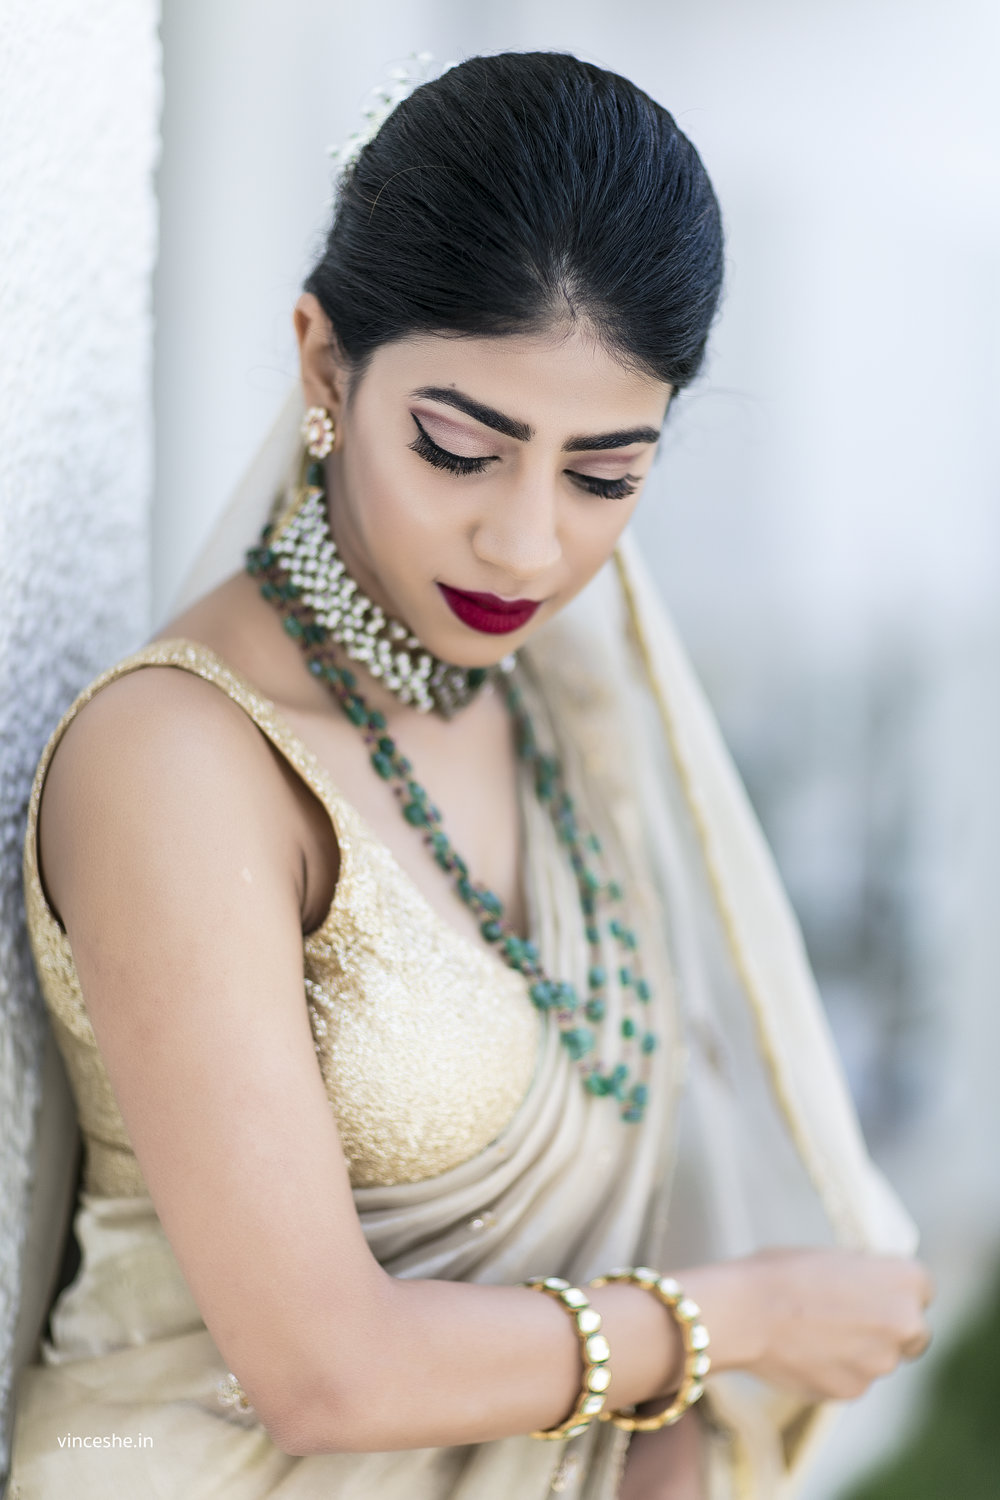 5696298e3e3 The list of things to bear in mind while planning your bridal look is  endless. Here are a few tips from ShimmerMe to look stunning on your big  day!